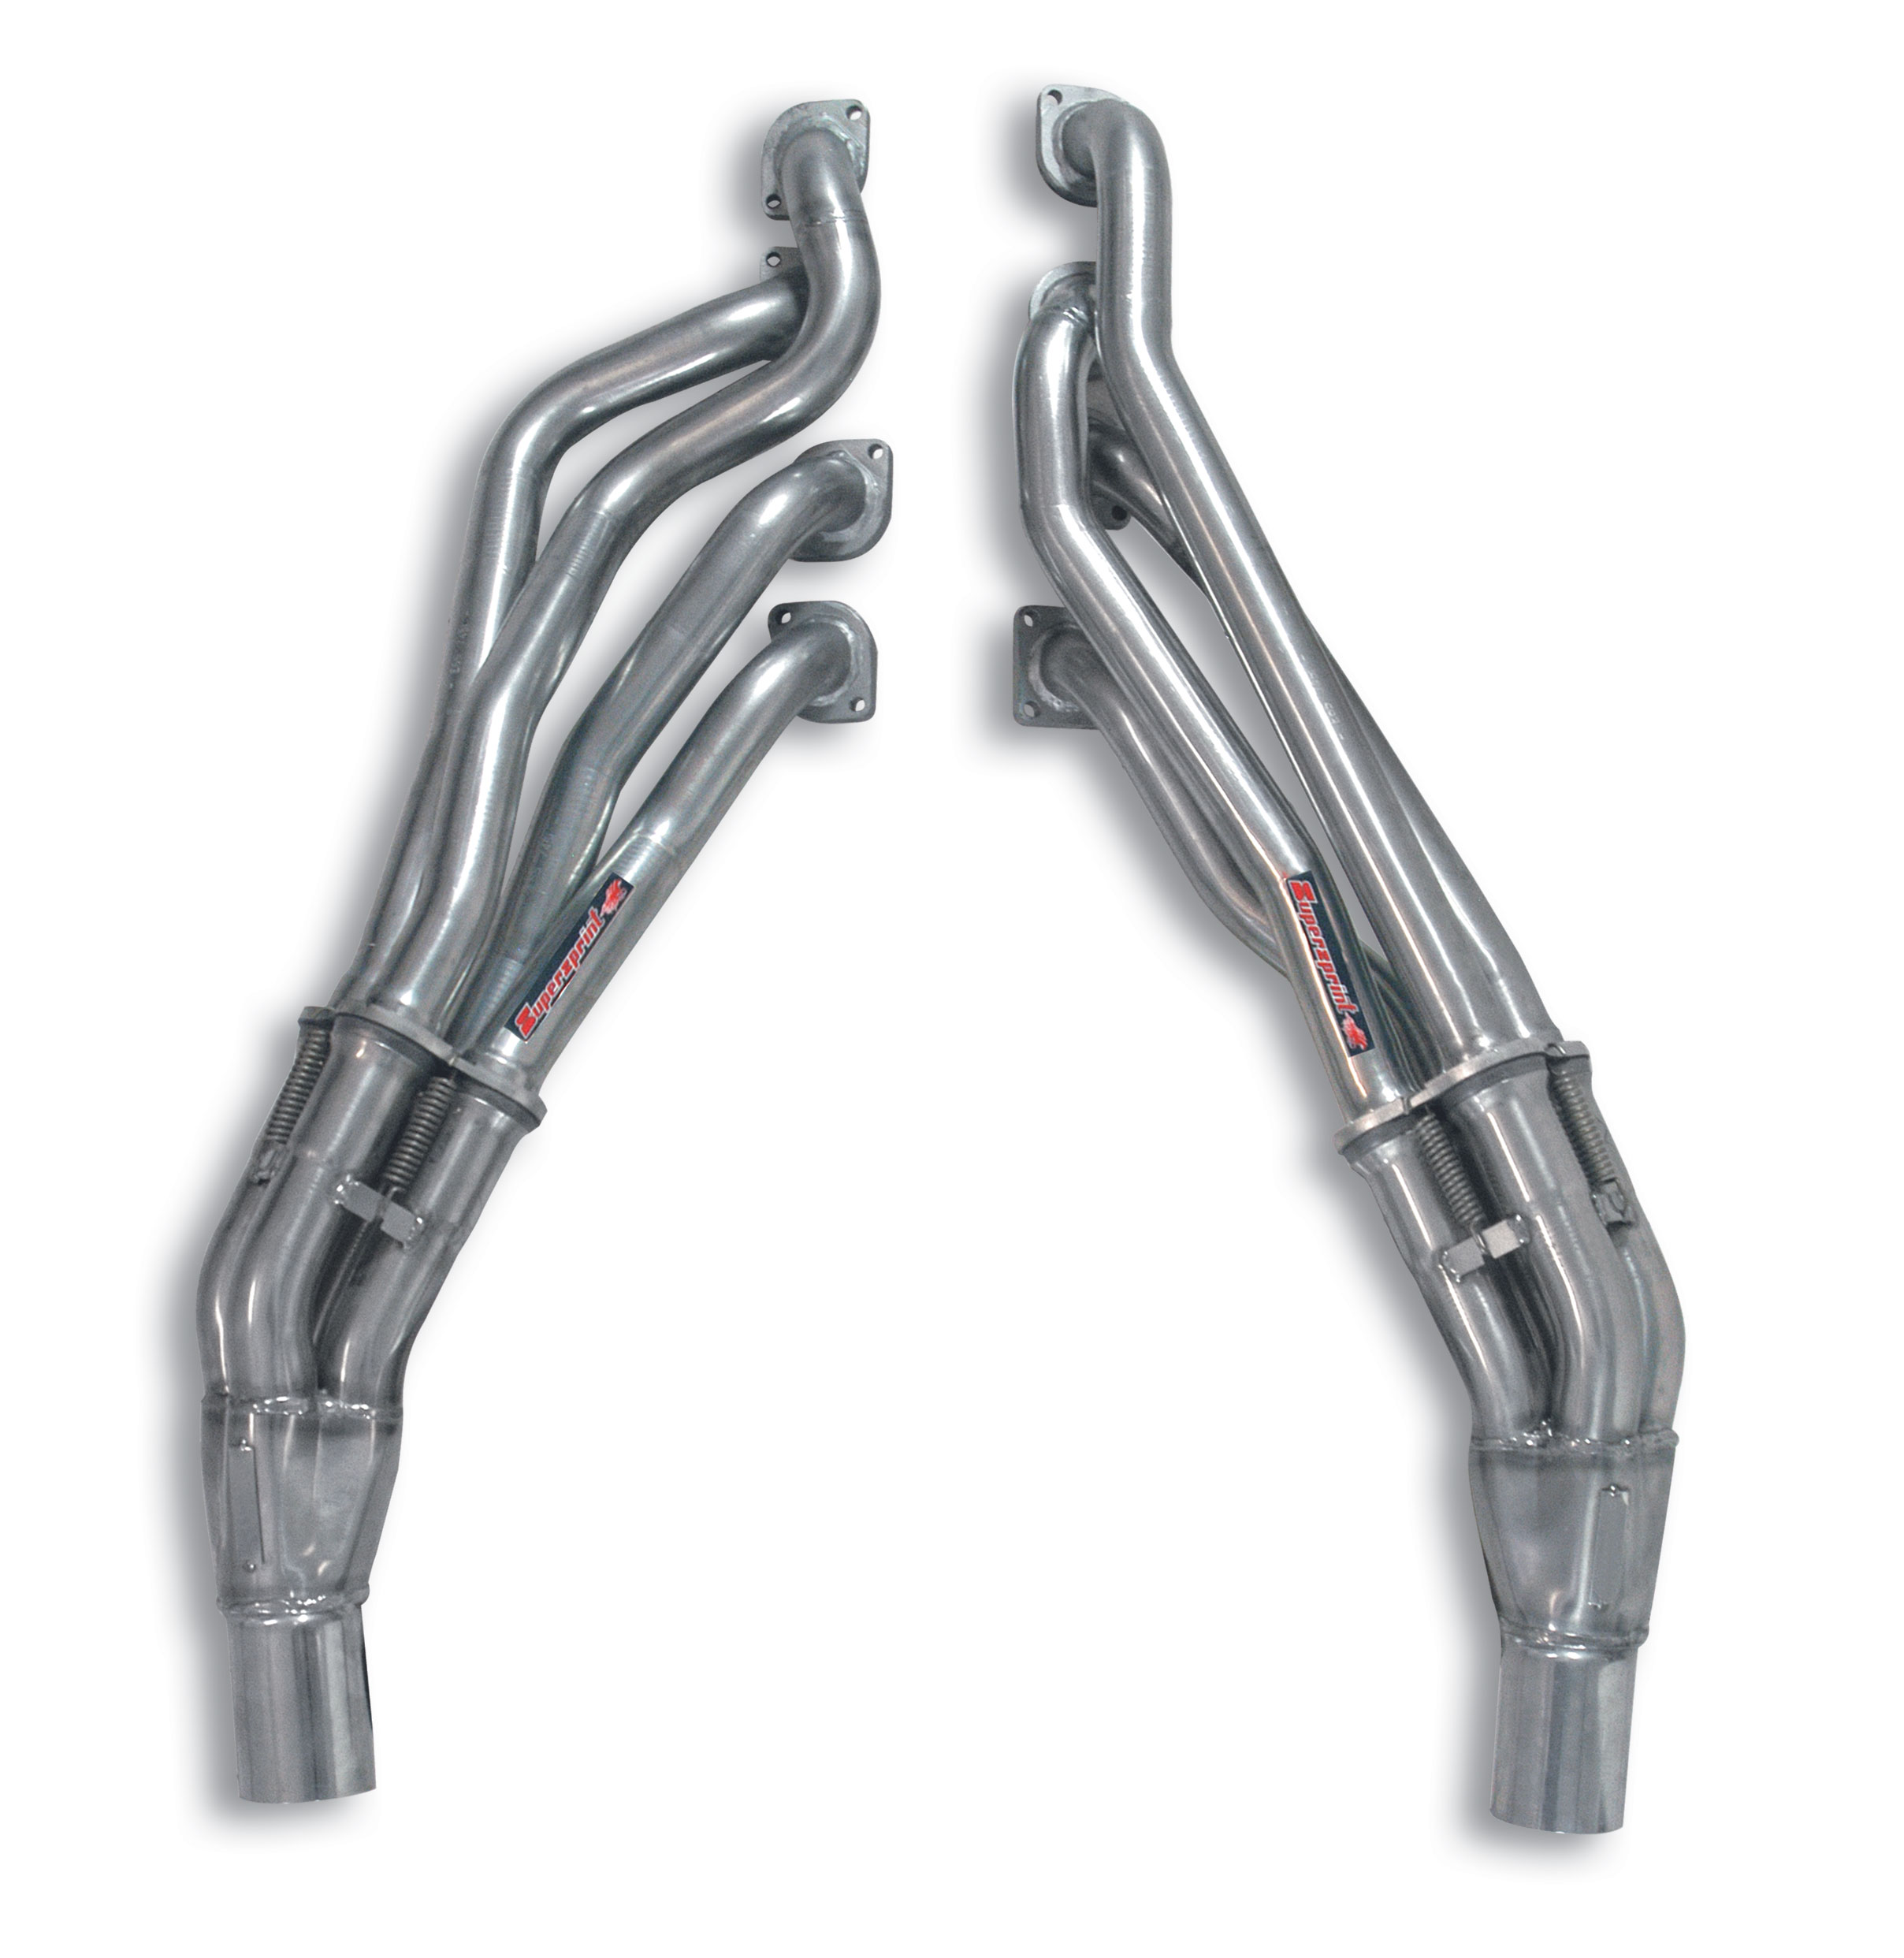 Alpina BMW - ALPINA B6 (E63 Coupè) 4.4i V8 (500 Hp) 2004 -> 2010 Manifold Right - Left<br>(Left Hand Drive)<br>SUPERSPRINT DESIGN PATENT, performance exhaust systems